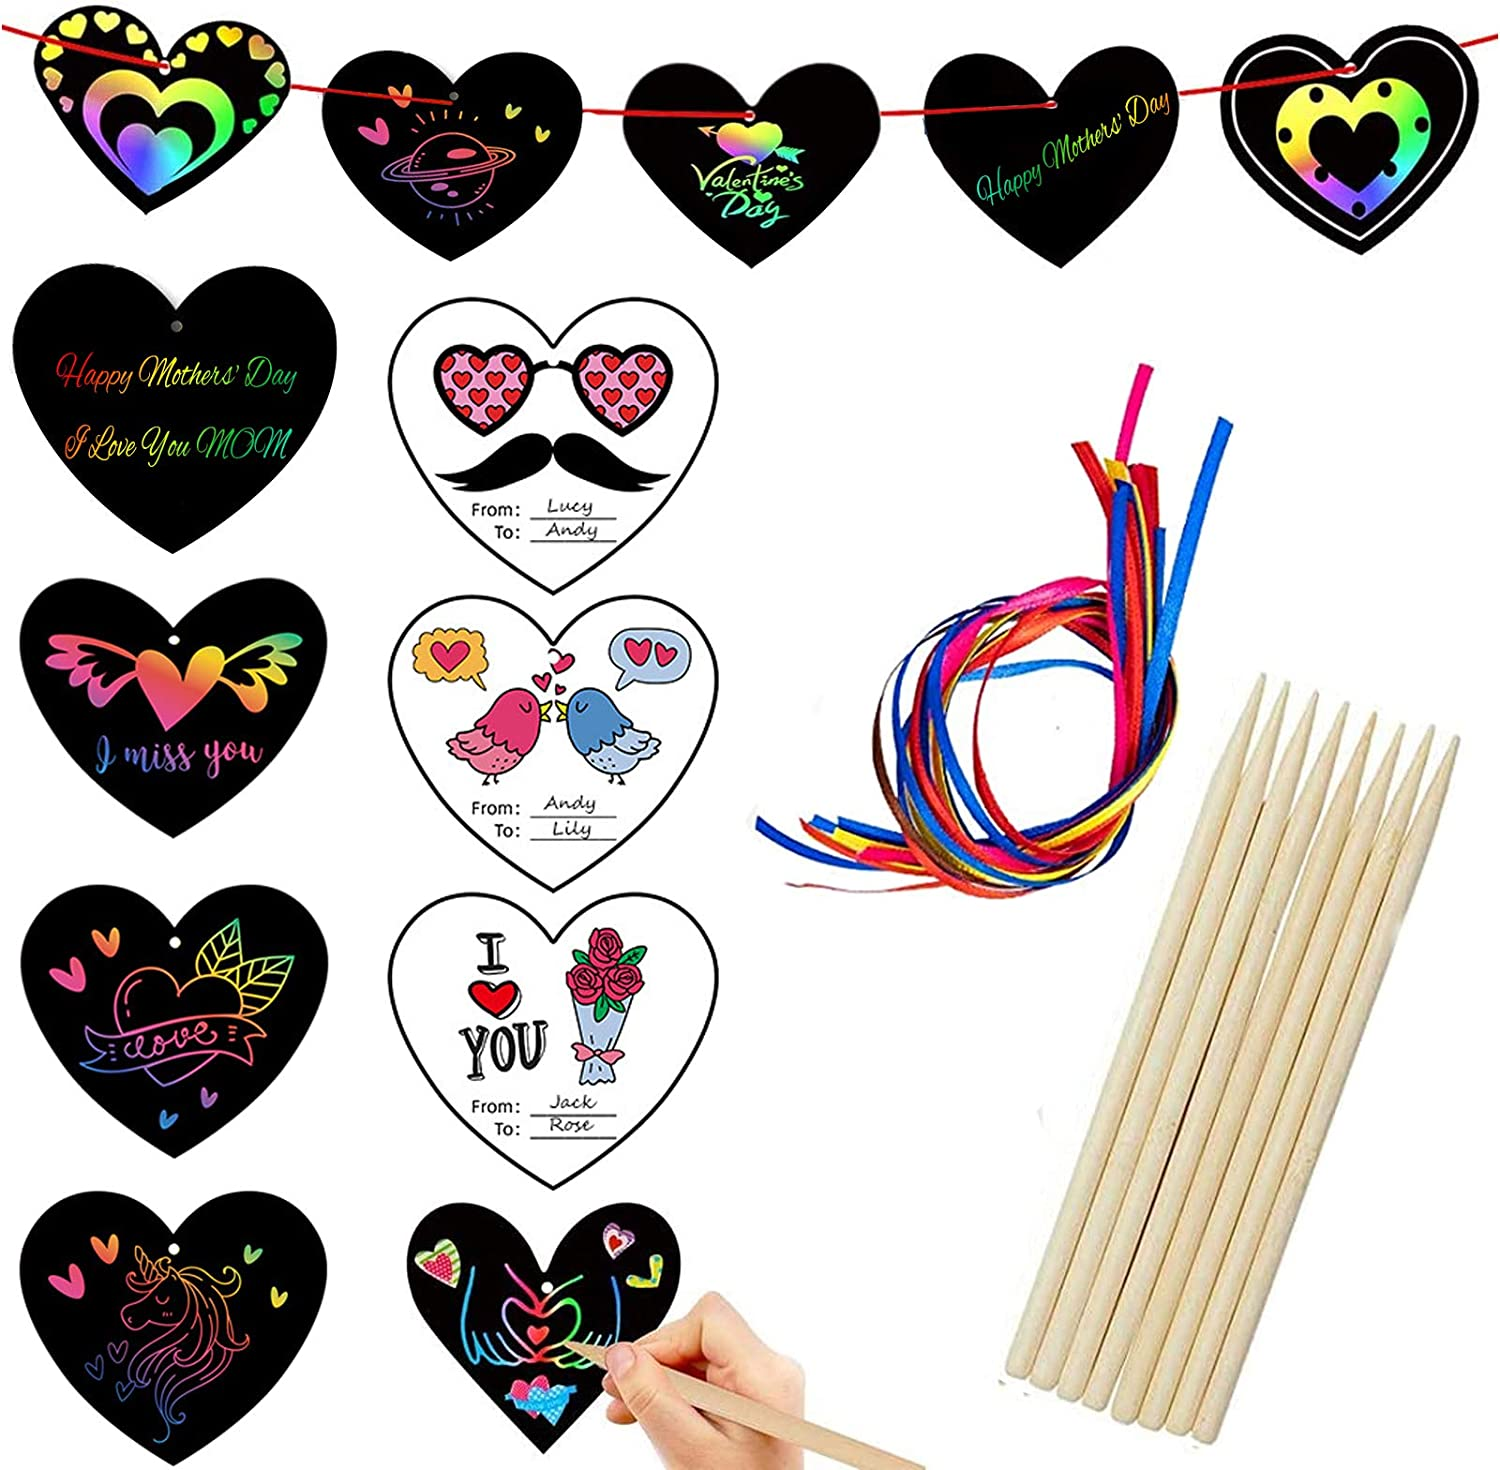 beitony Scratch Art for Kids Paper 12 Pcs Scratch Art -Love Magic Rainbow Scratch Paper Off Arts Kits Preschool Toy for 3 4 5 6 7 8 9 10 Age Kids Holiday|Party Favor|Birthday|Childrens Day Gift